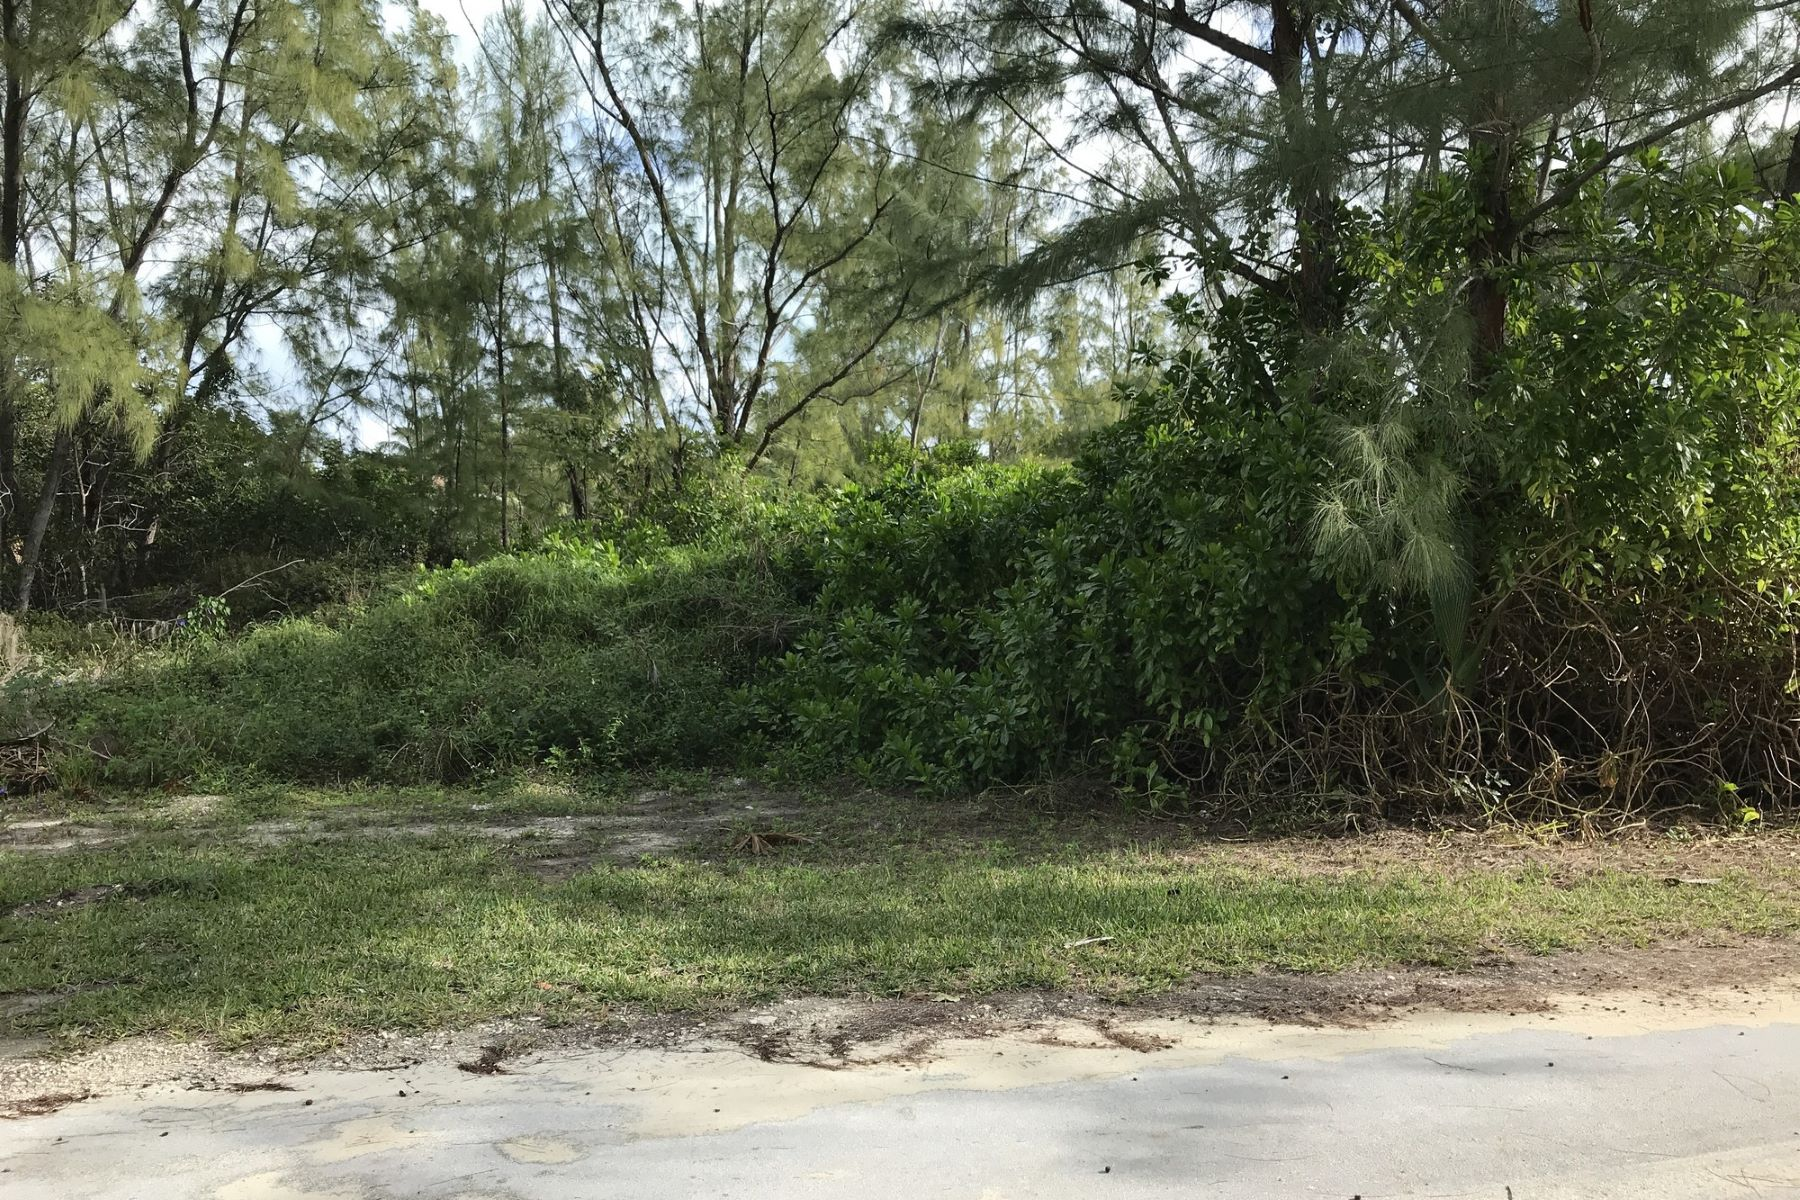 Land for Sale at Lot 17, Block 186 Treasure Cay, Abaco Bahamas